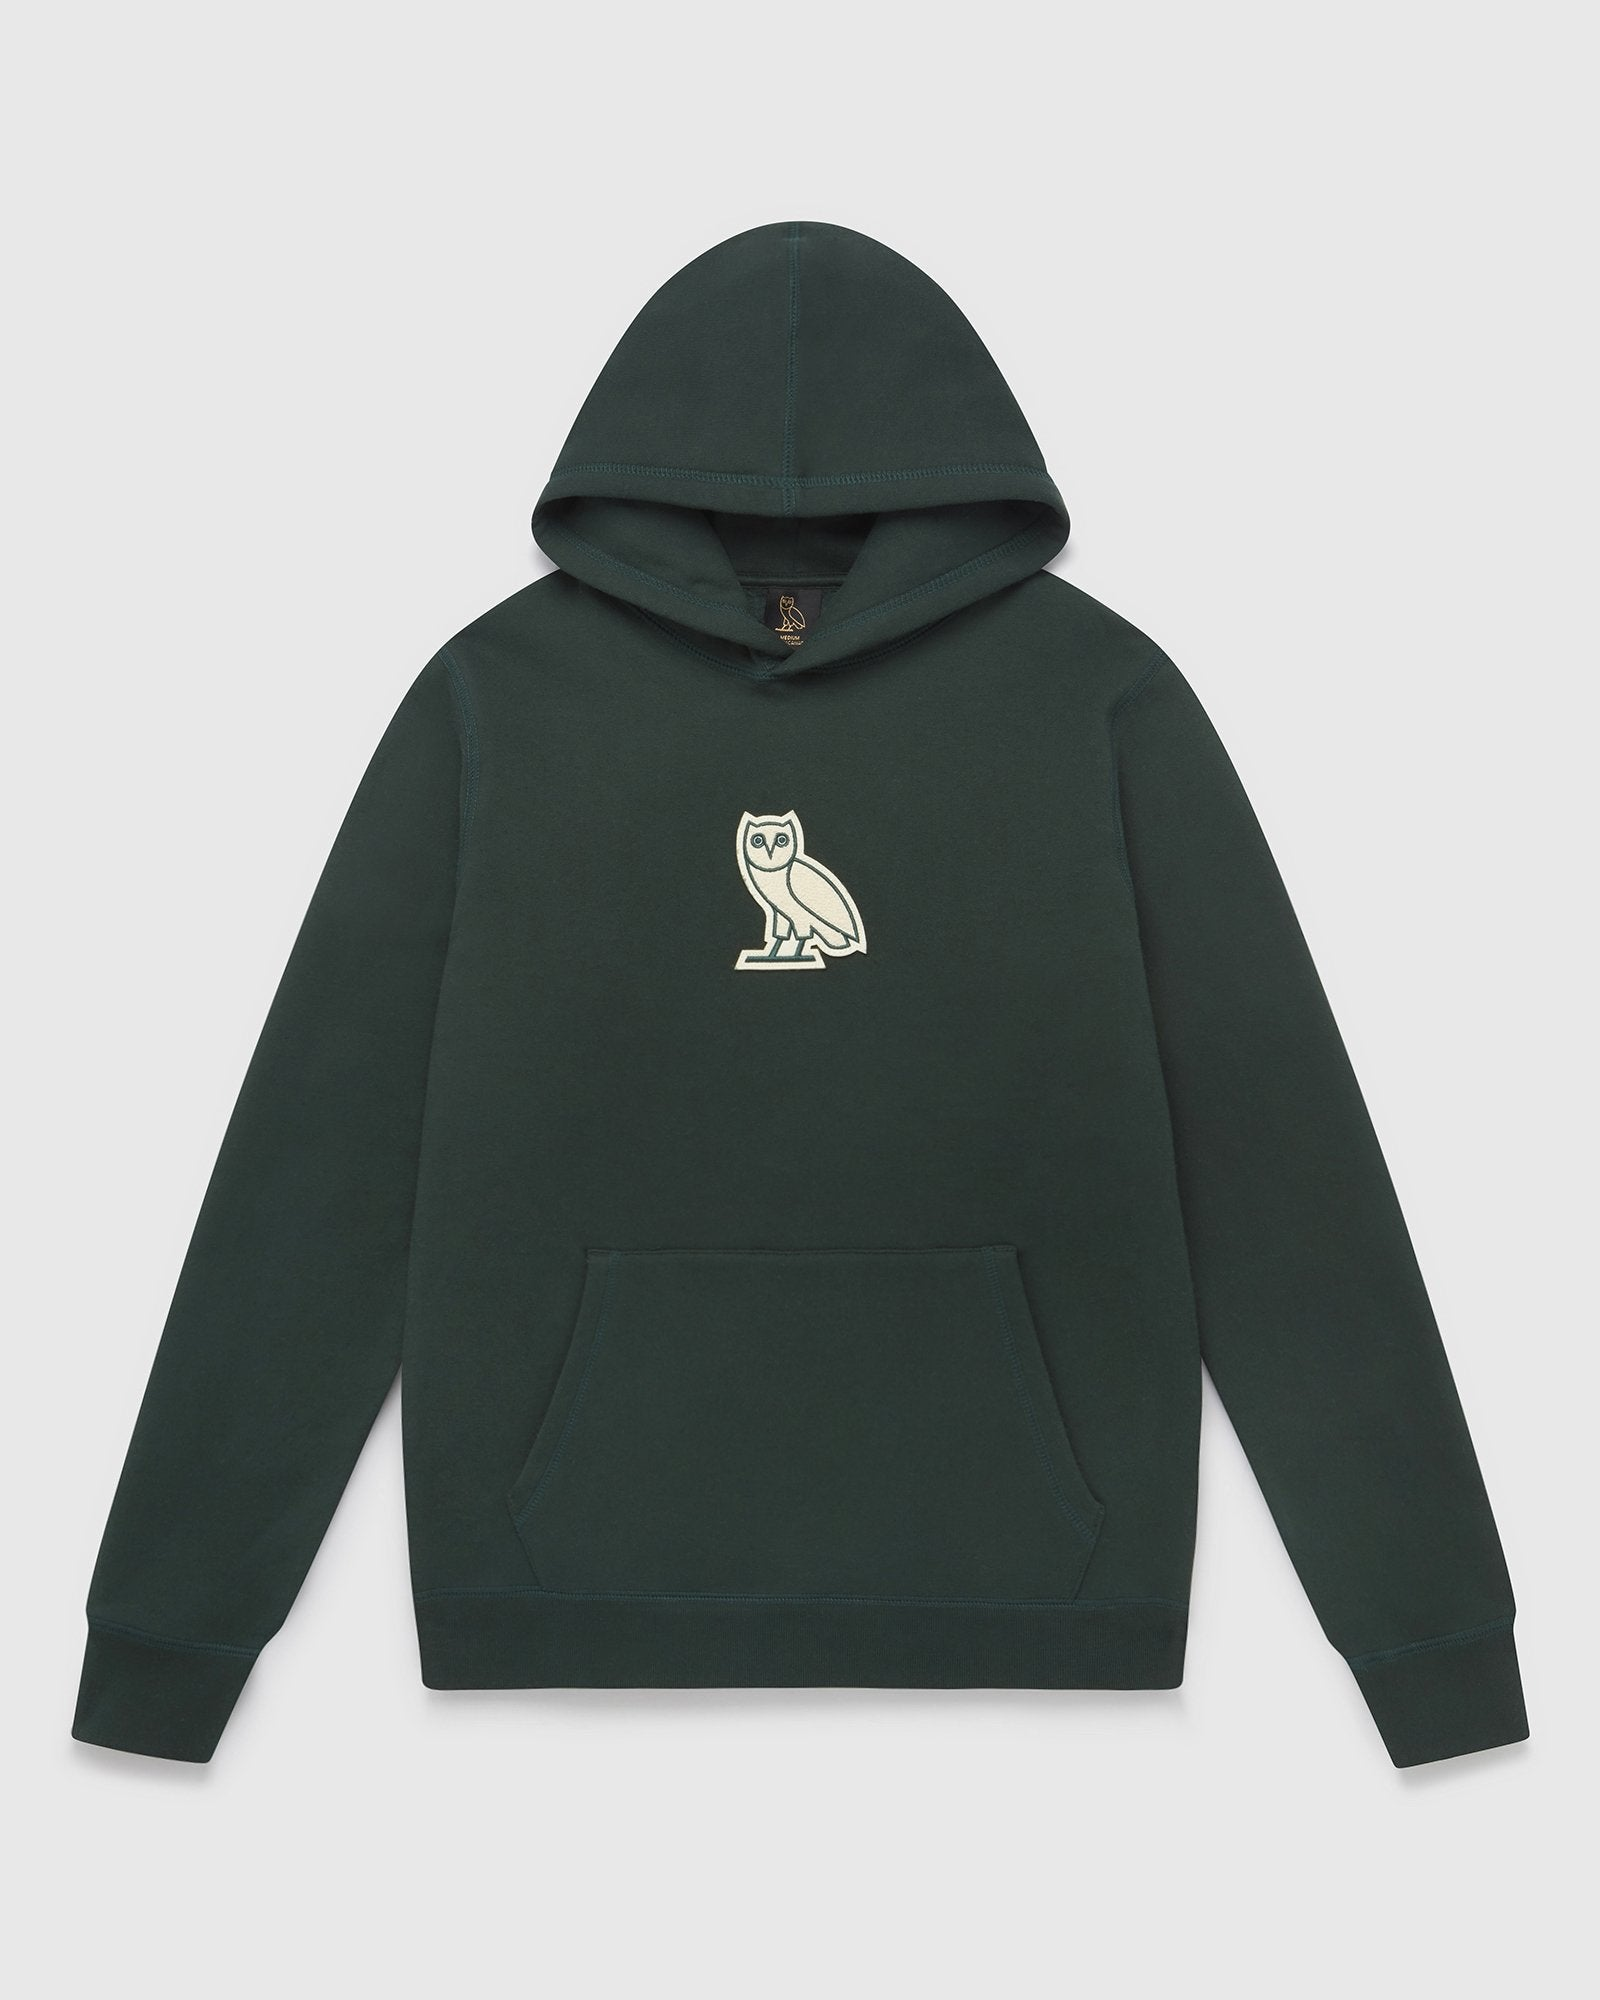 CLASSIC OWL HOODIE - EVERGREEN IMAGE #1